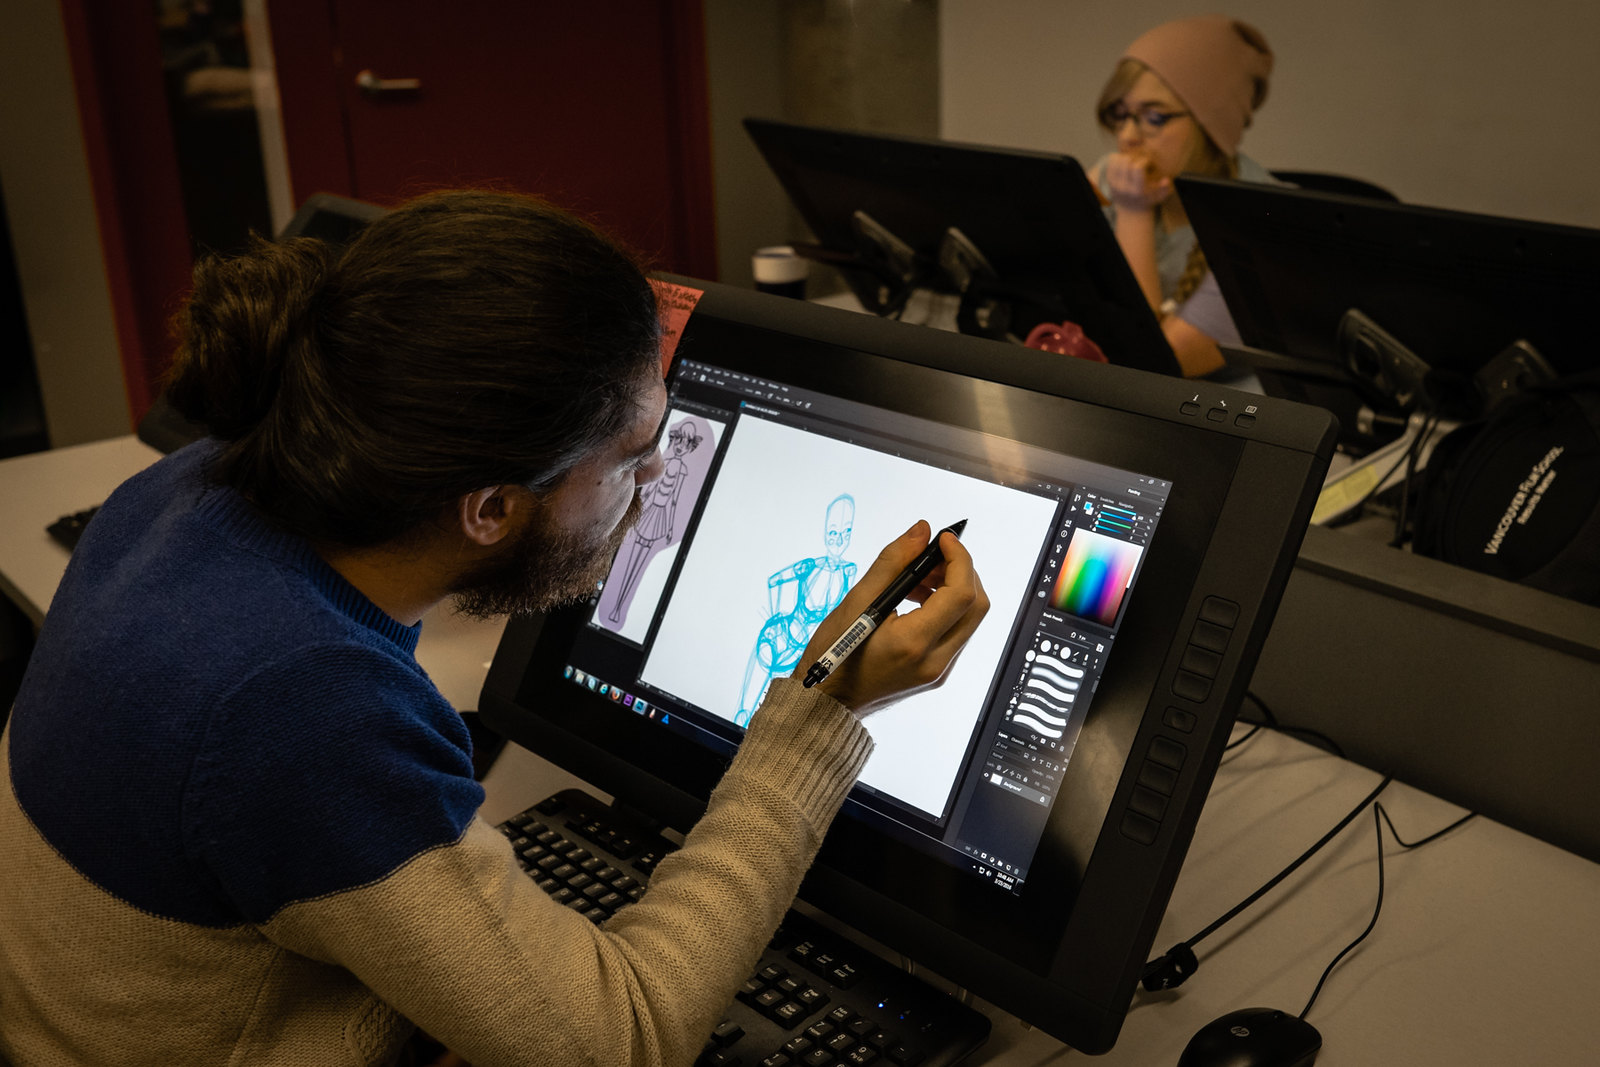 Students learning about different 3D animation types and techniques